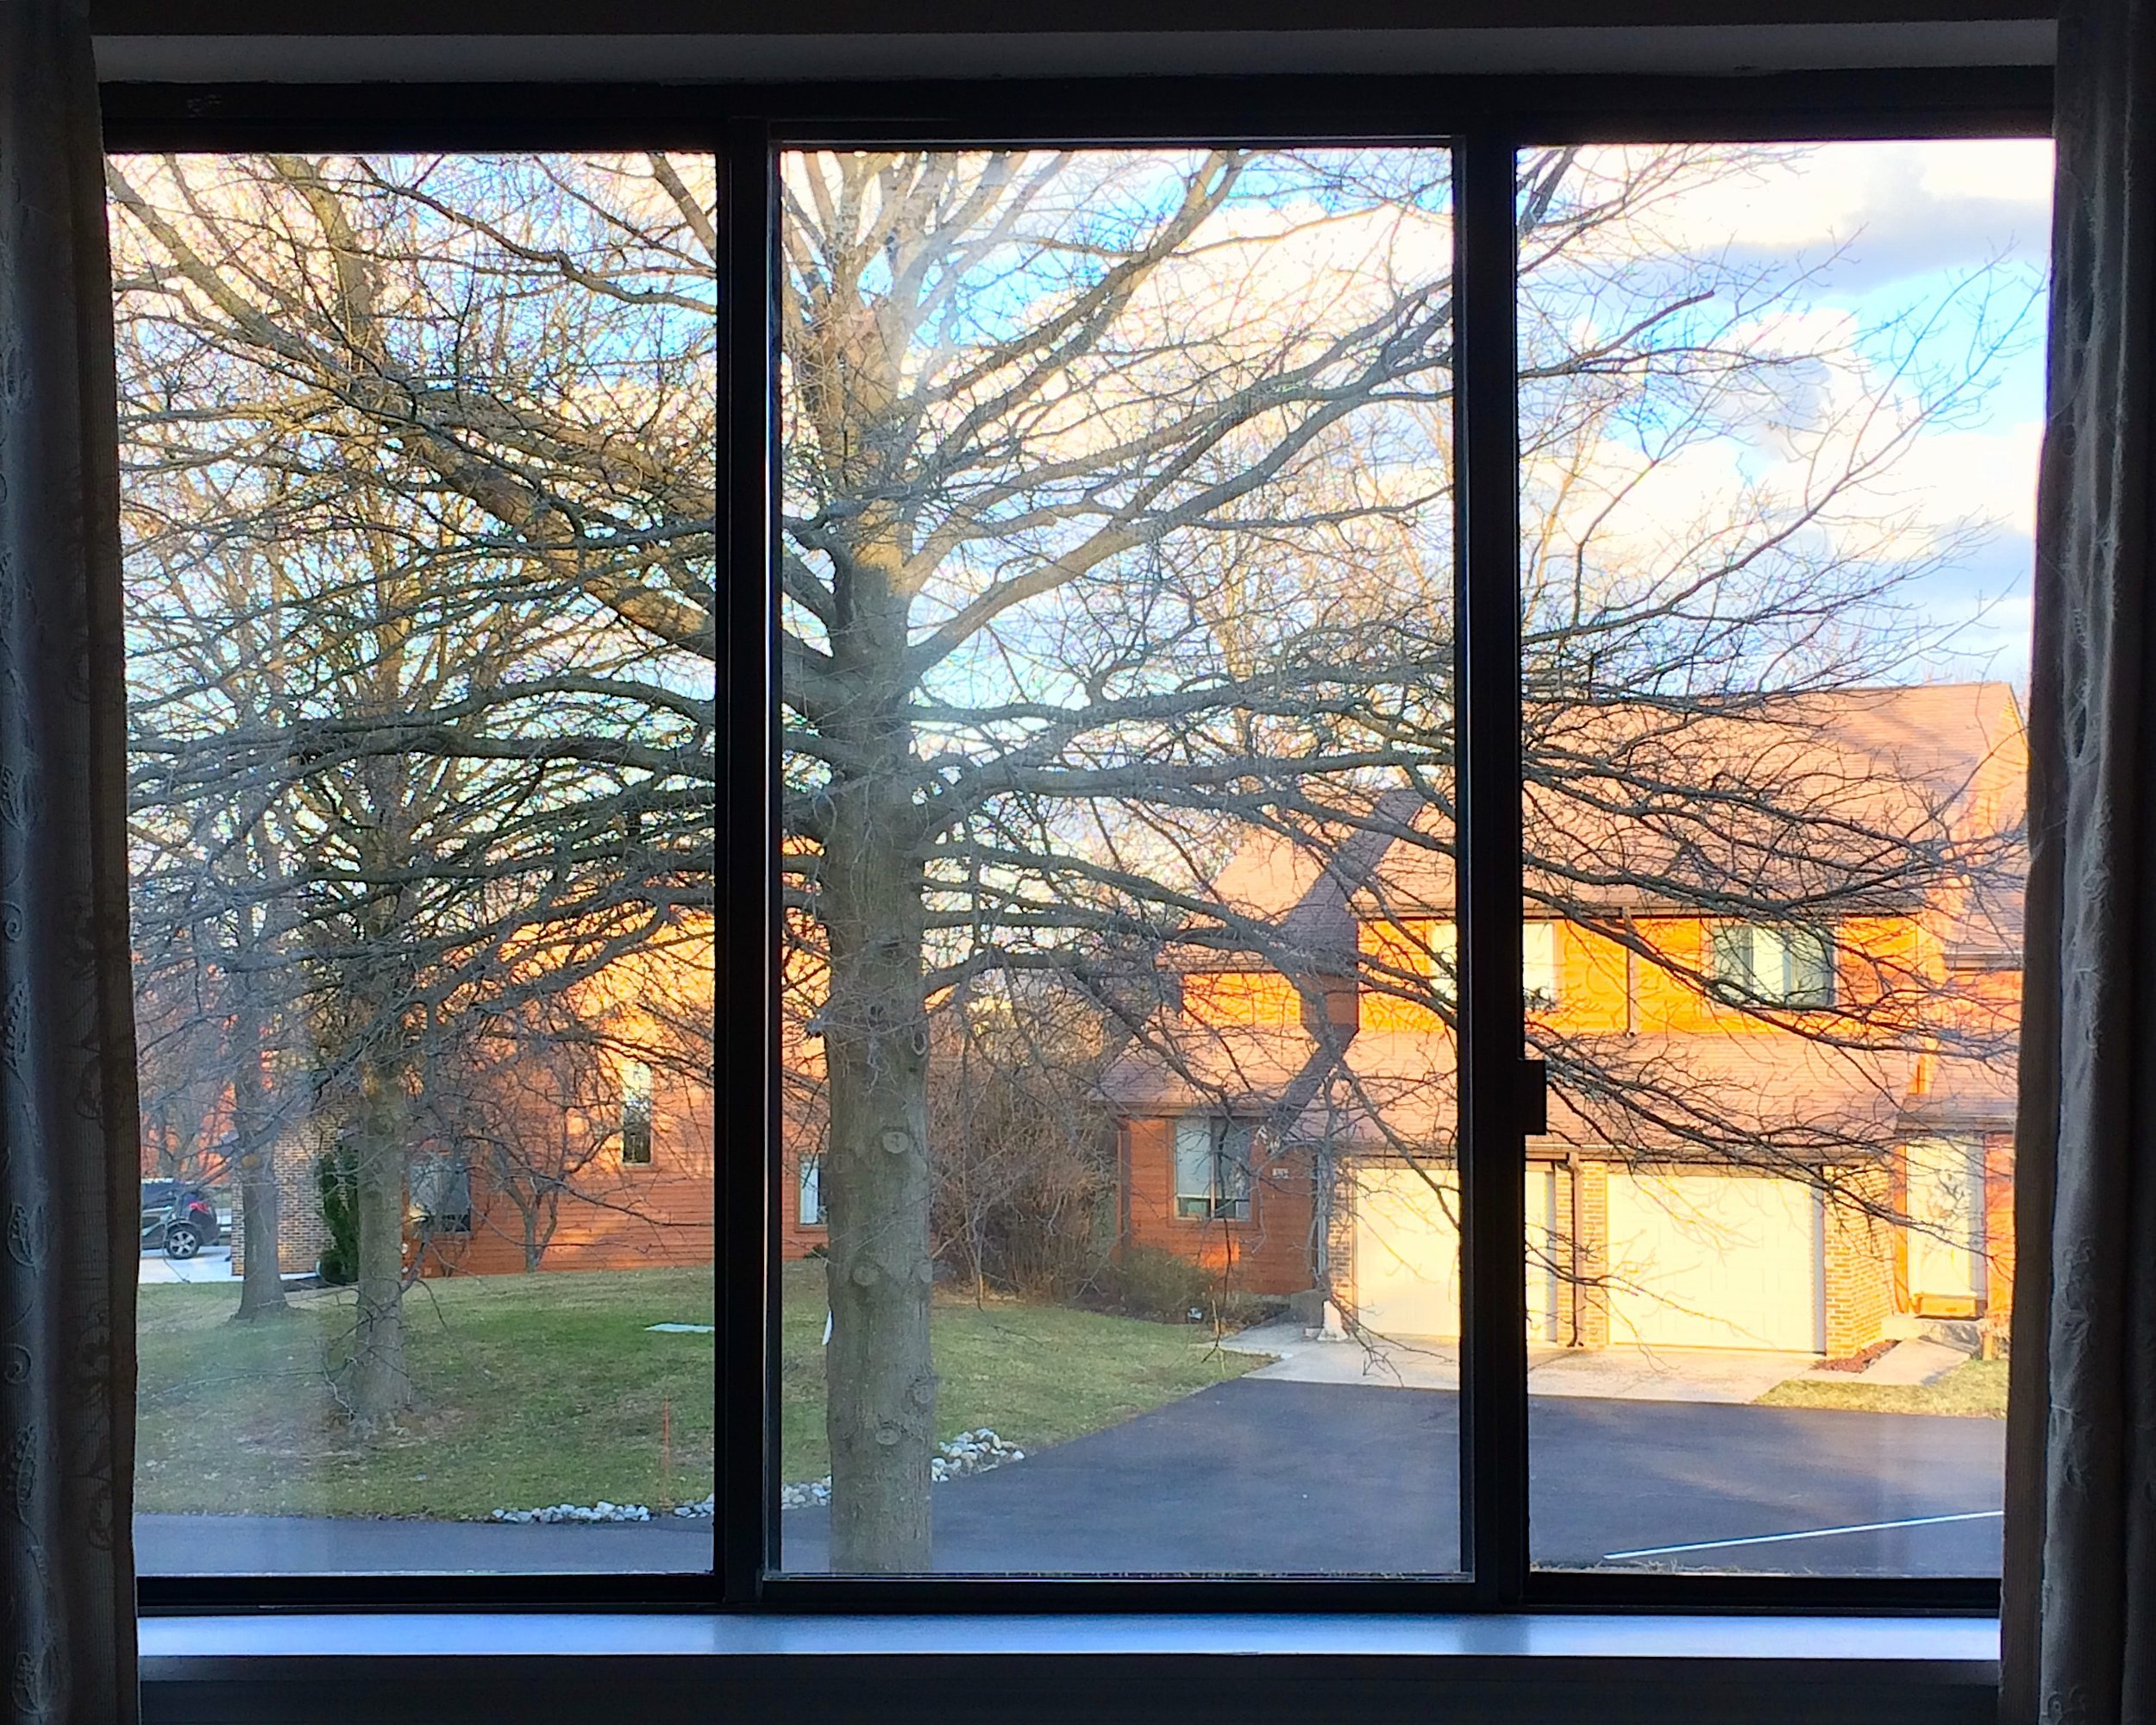 View from our bedroom window of one of my favorite trees in early spring.